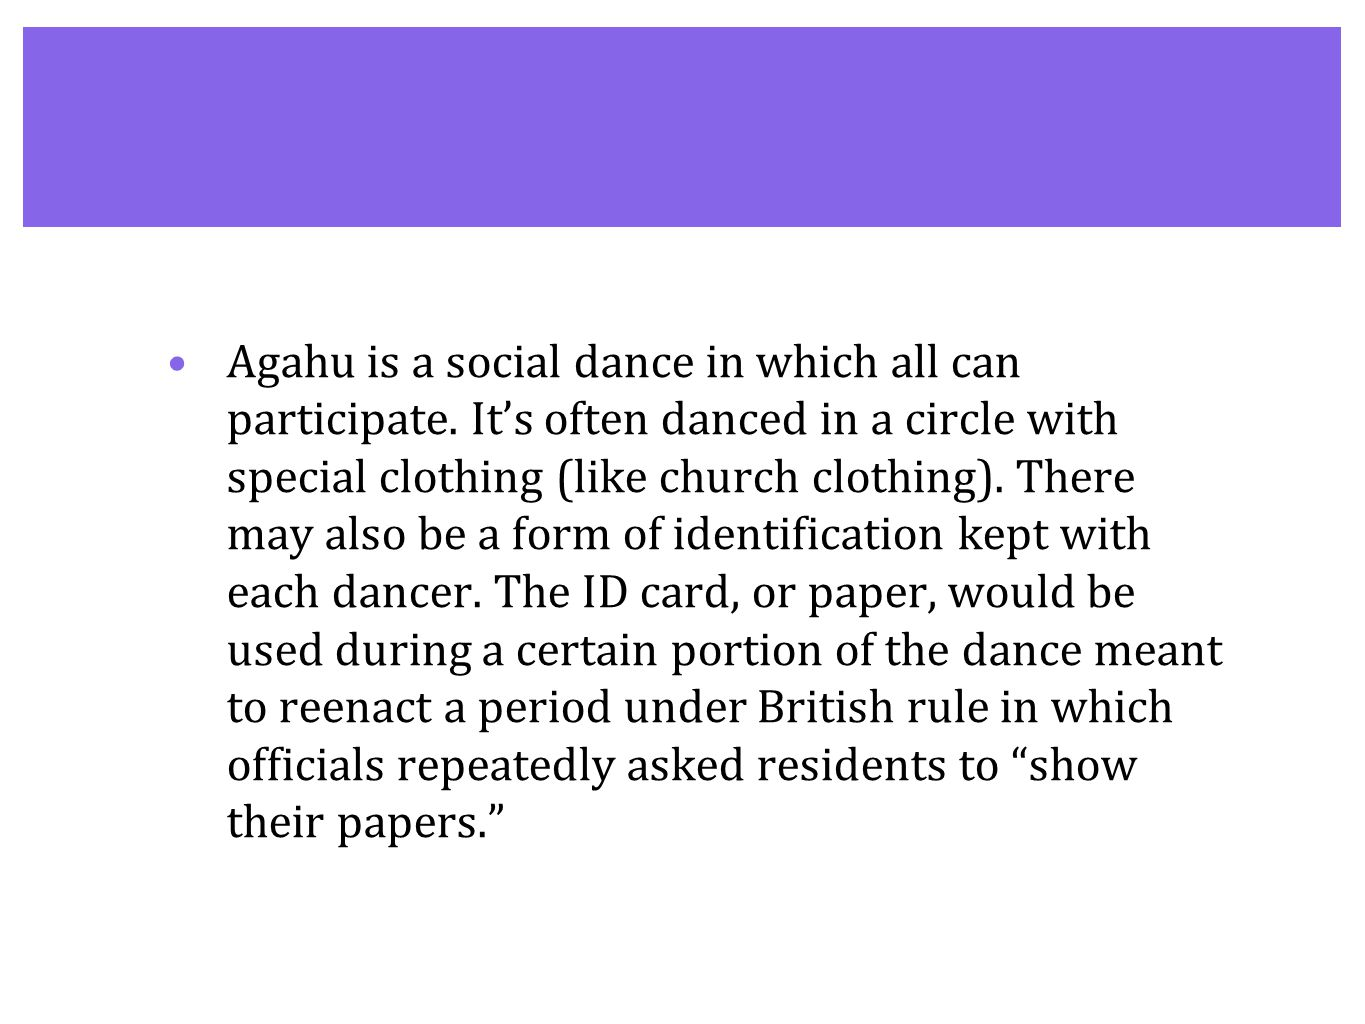 Agahu is a social dance in which all can participate